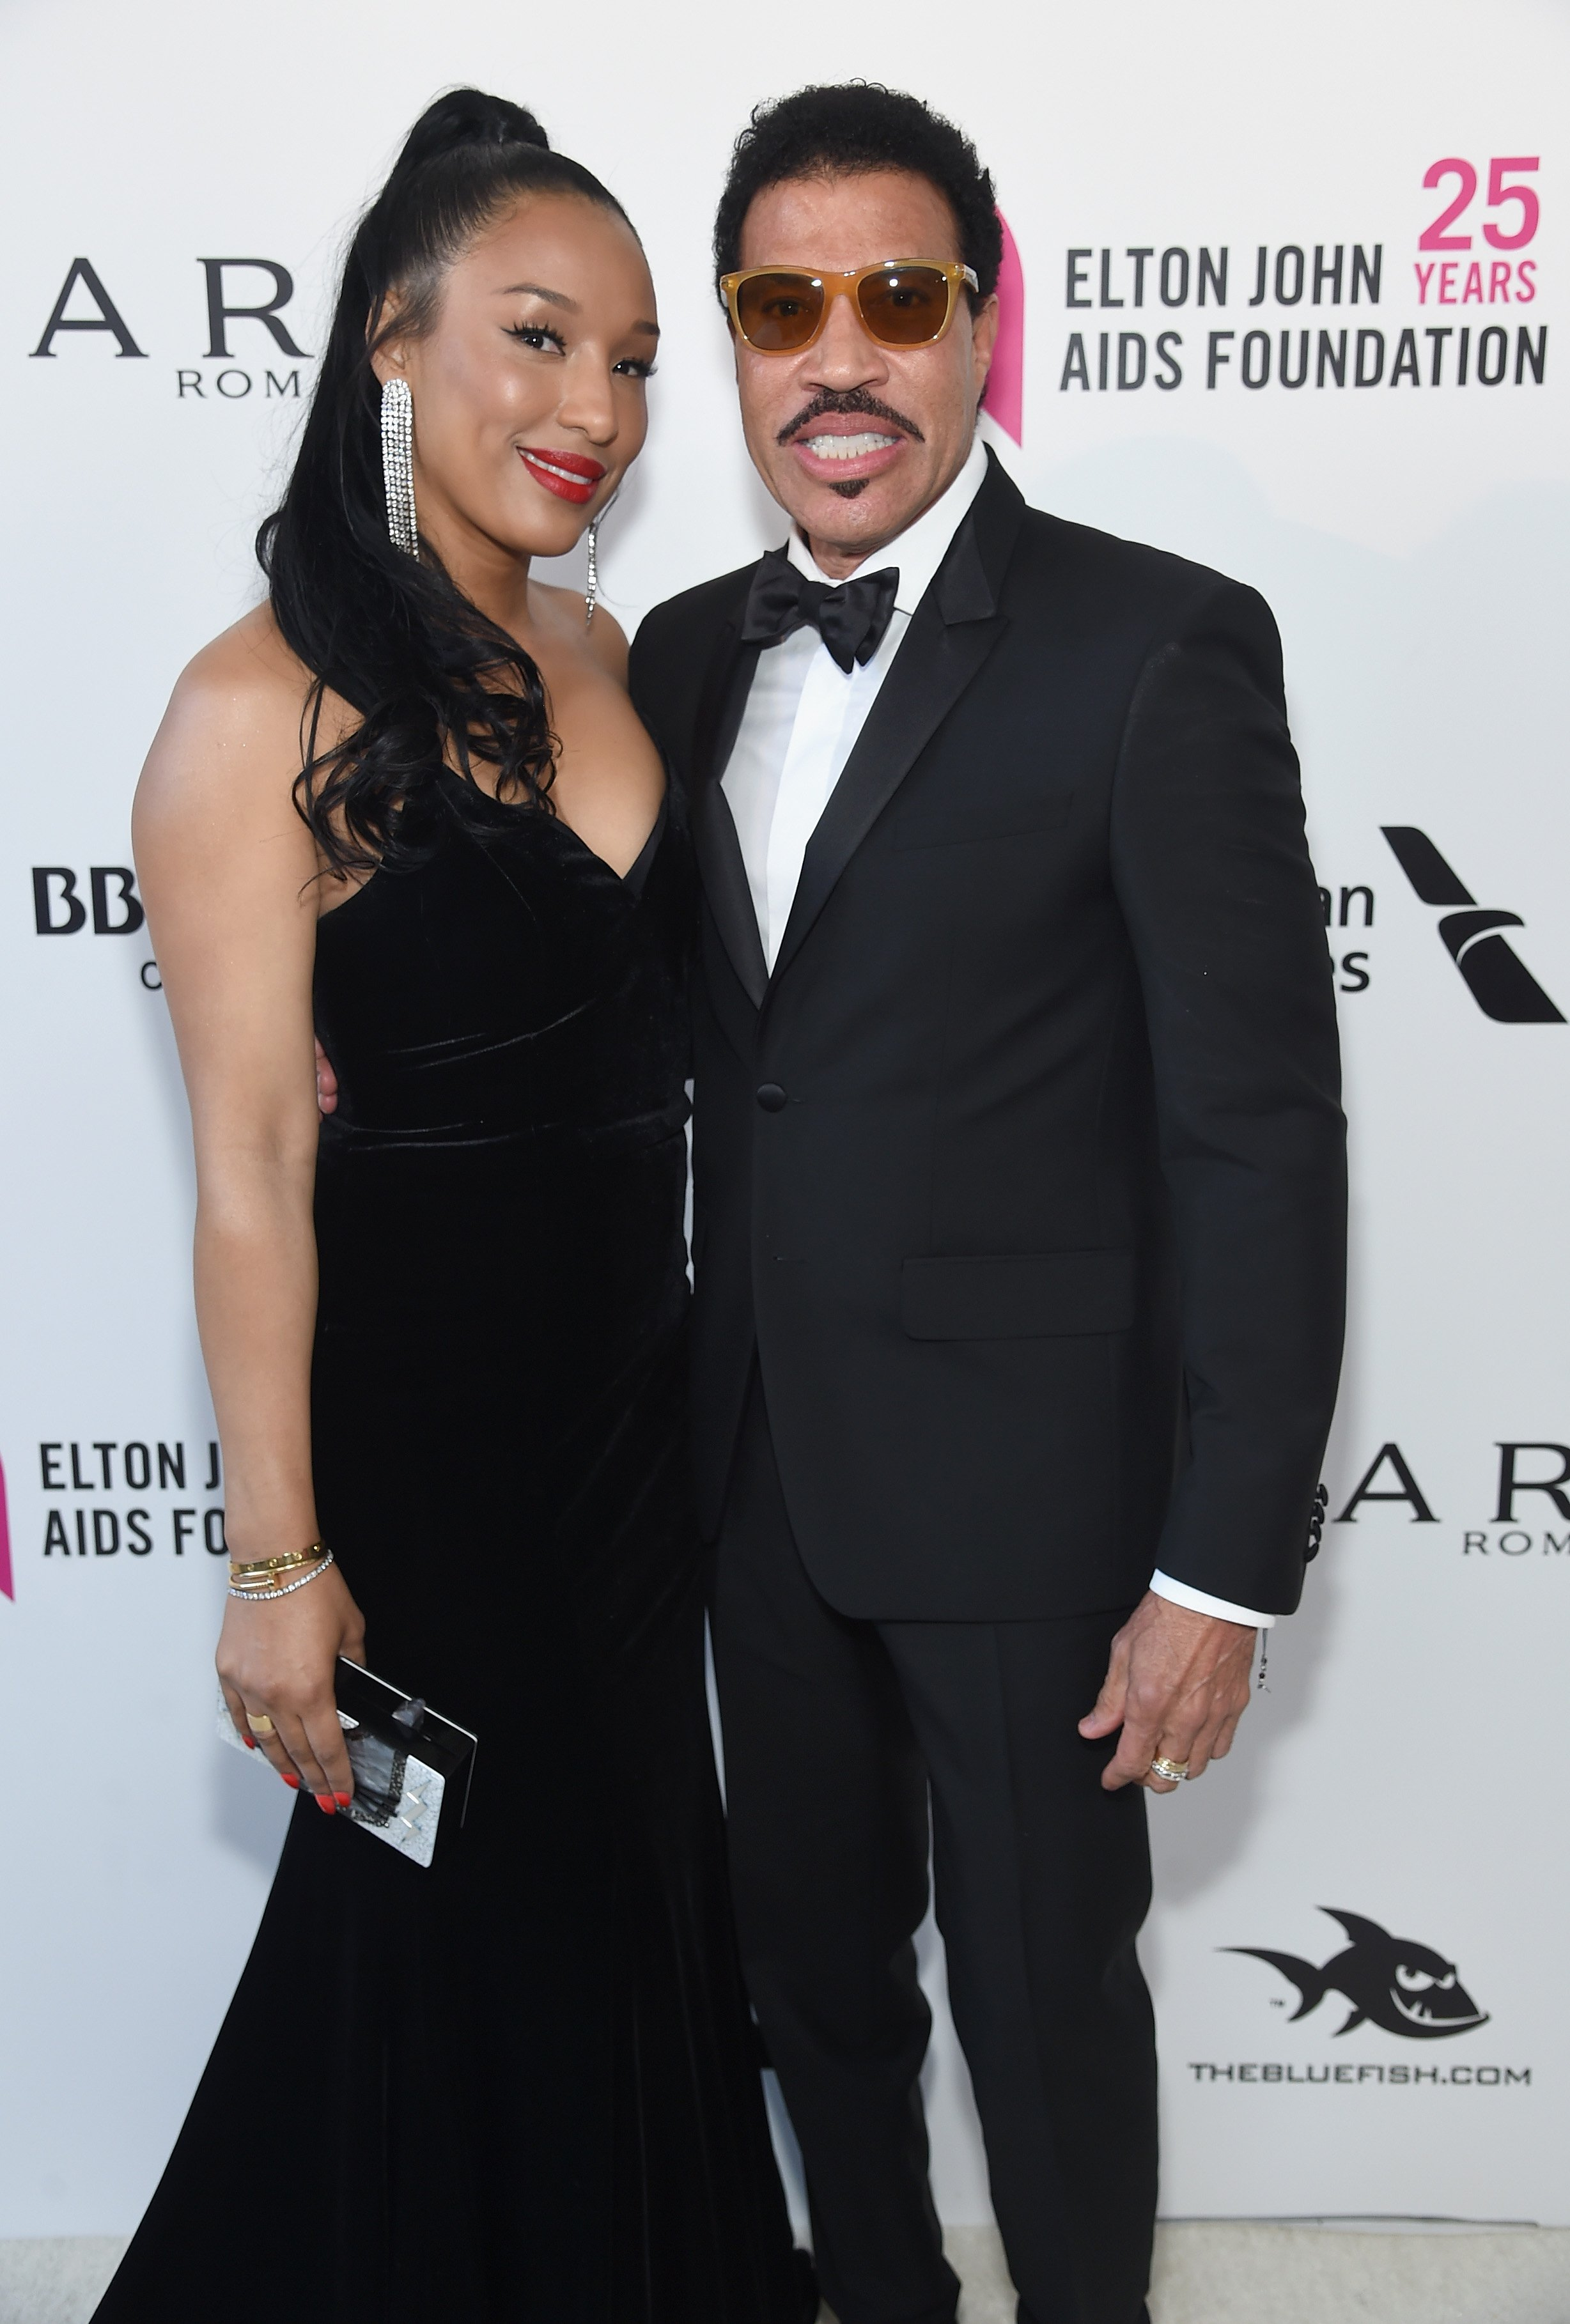 Lisa Parigi and Lionel Richie at the 26th annual Elton John AIDS Foundation Academy Awards Viewing Party on March 4, 2018 | Photo: GettyImages